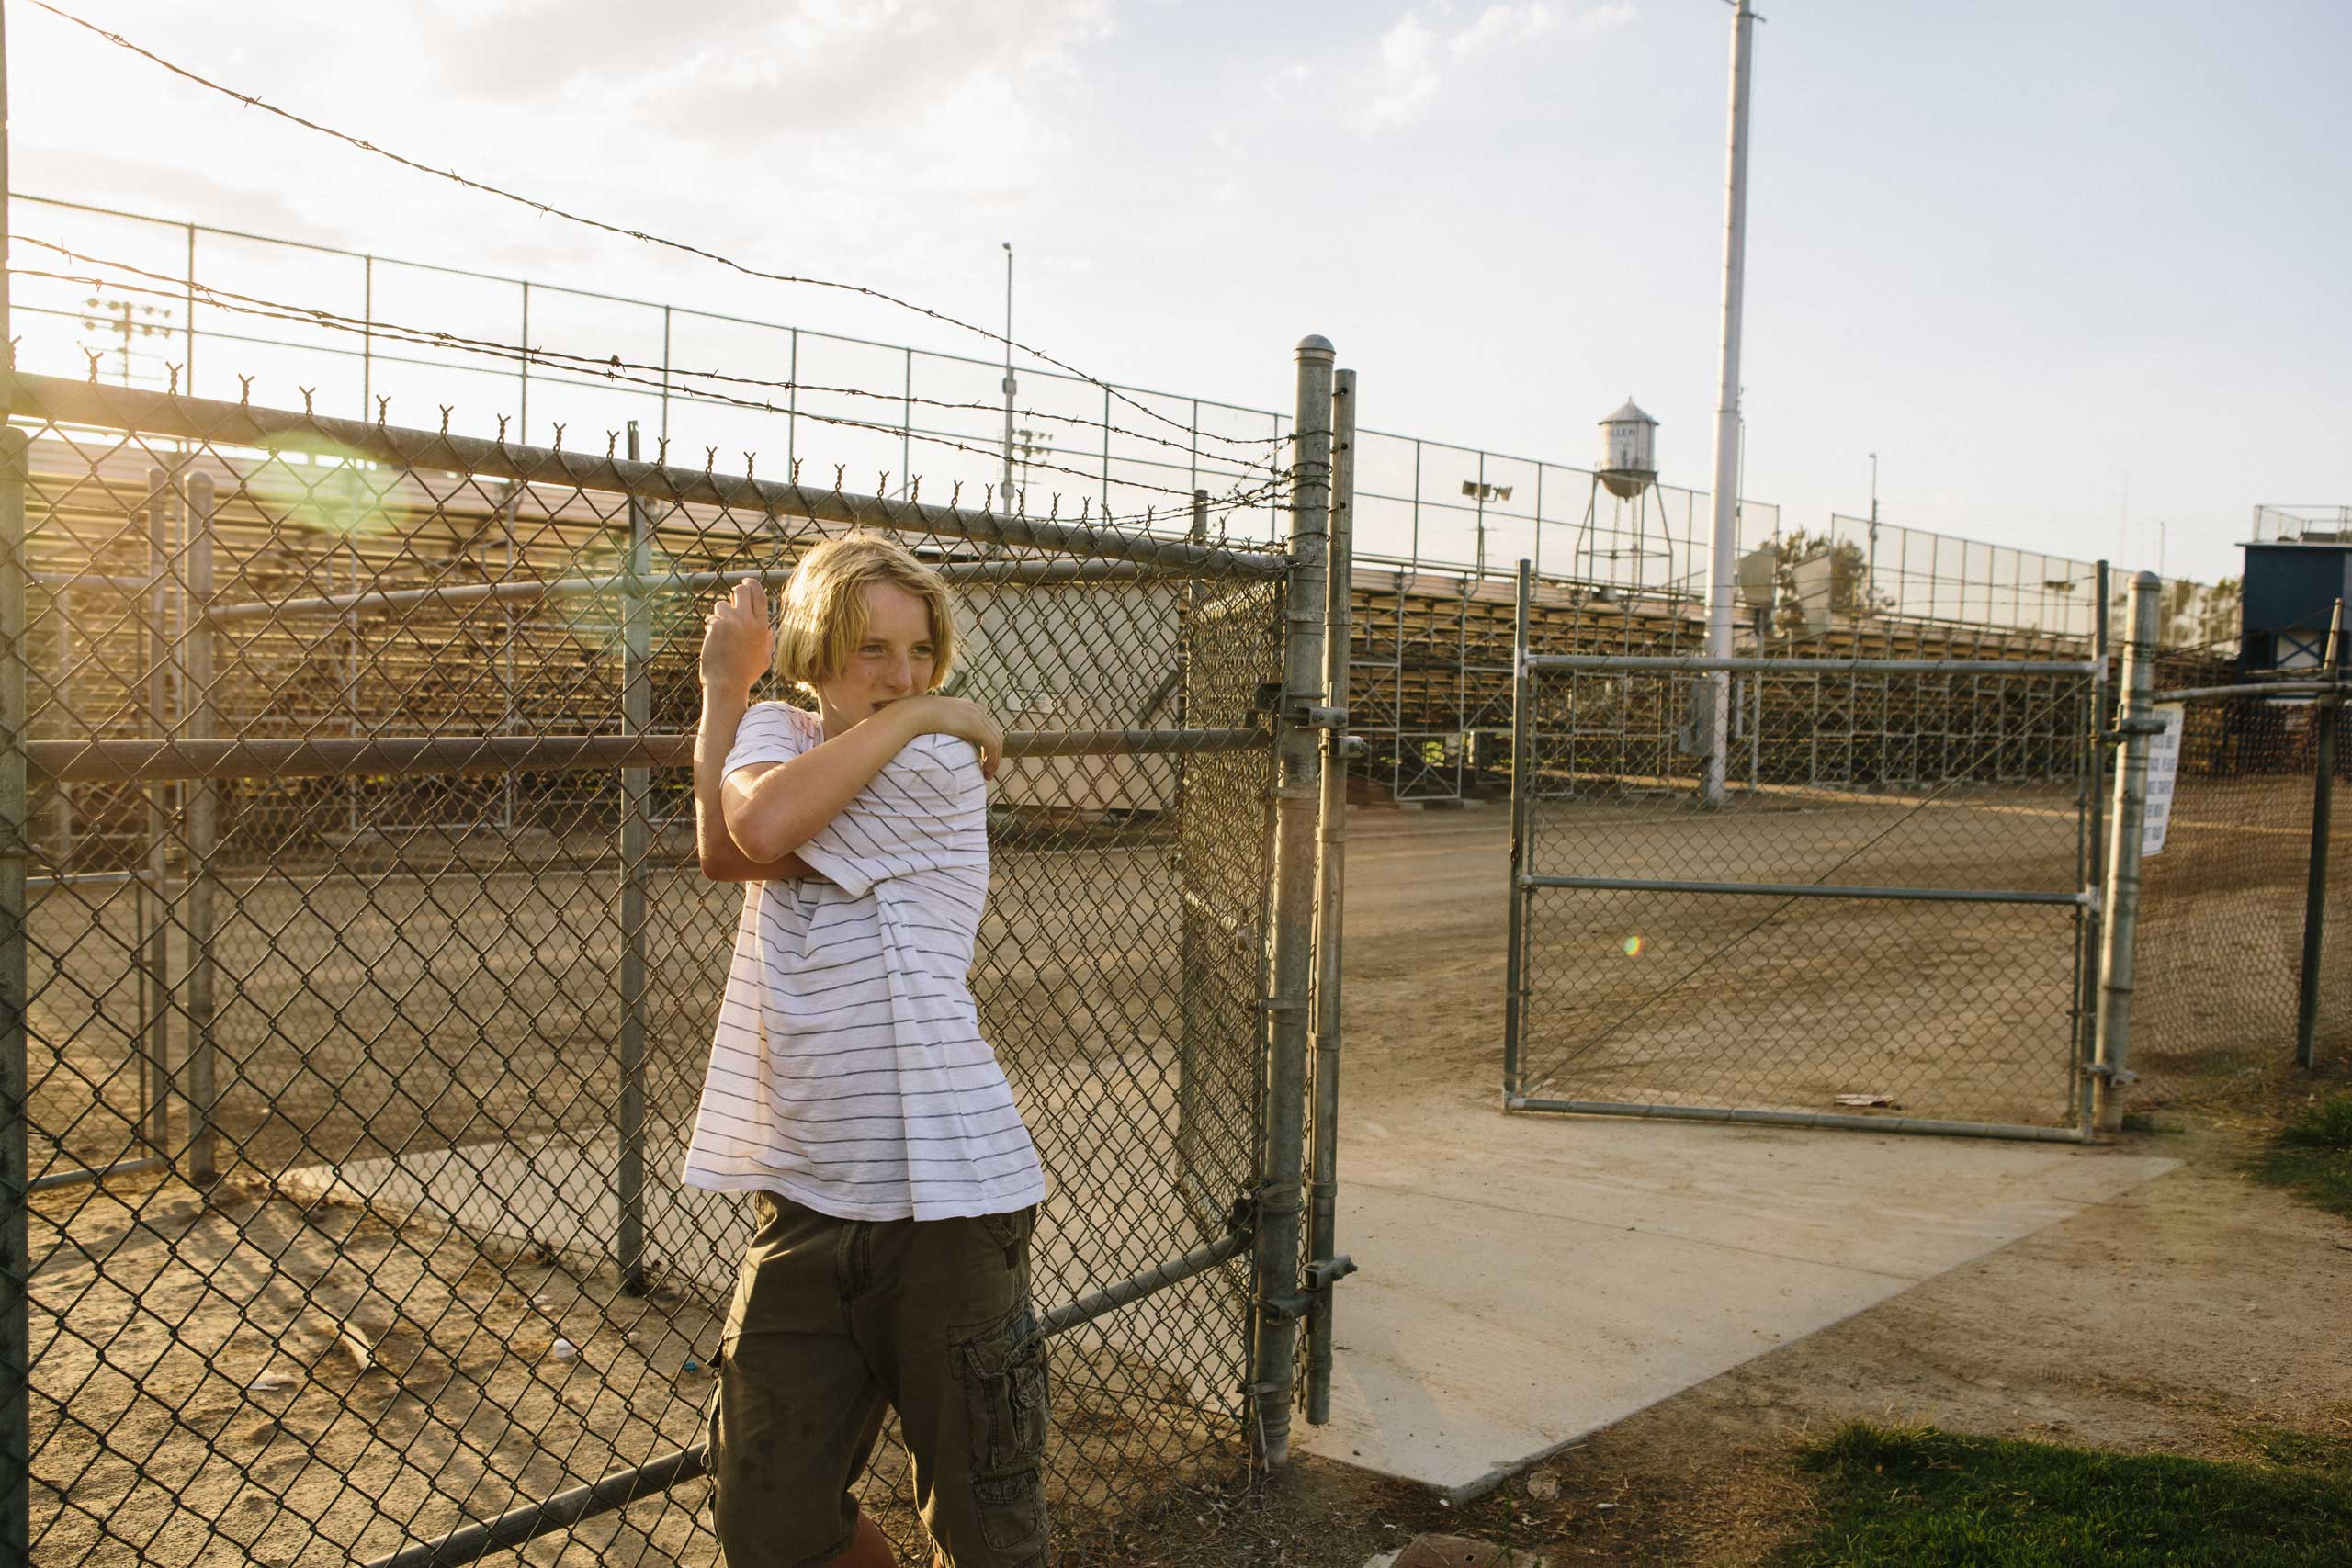 Benjamin Swall, 14, waits for his brother's football practice to end at Bakersfield High School.